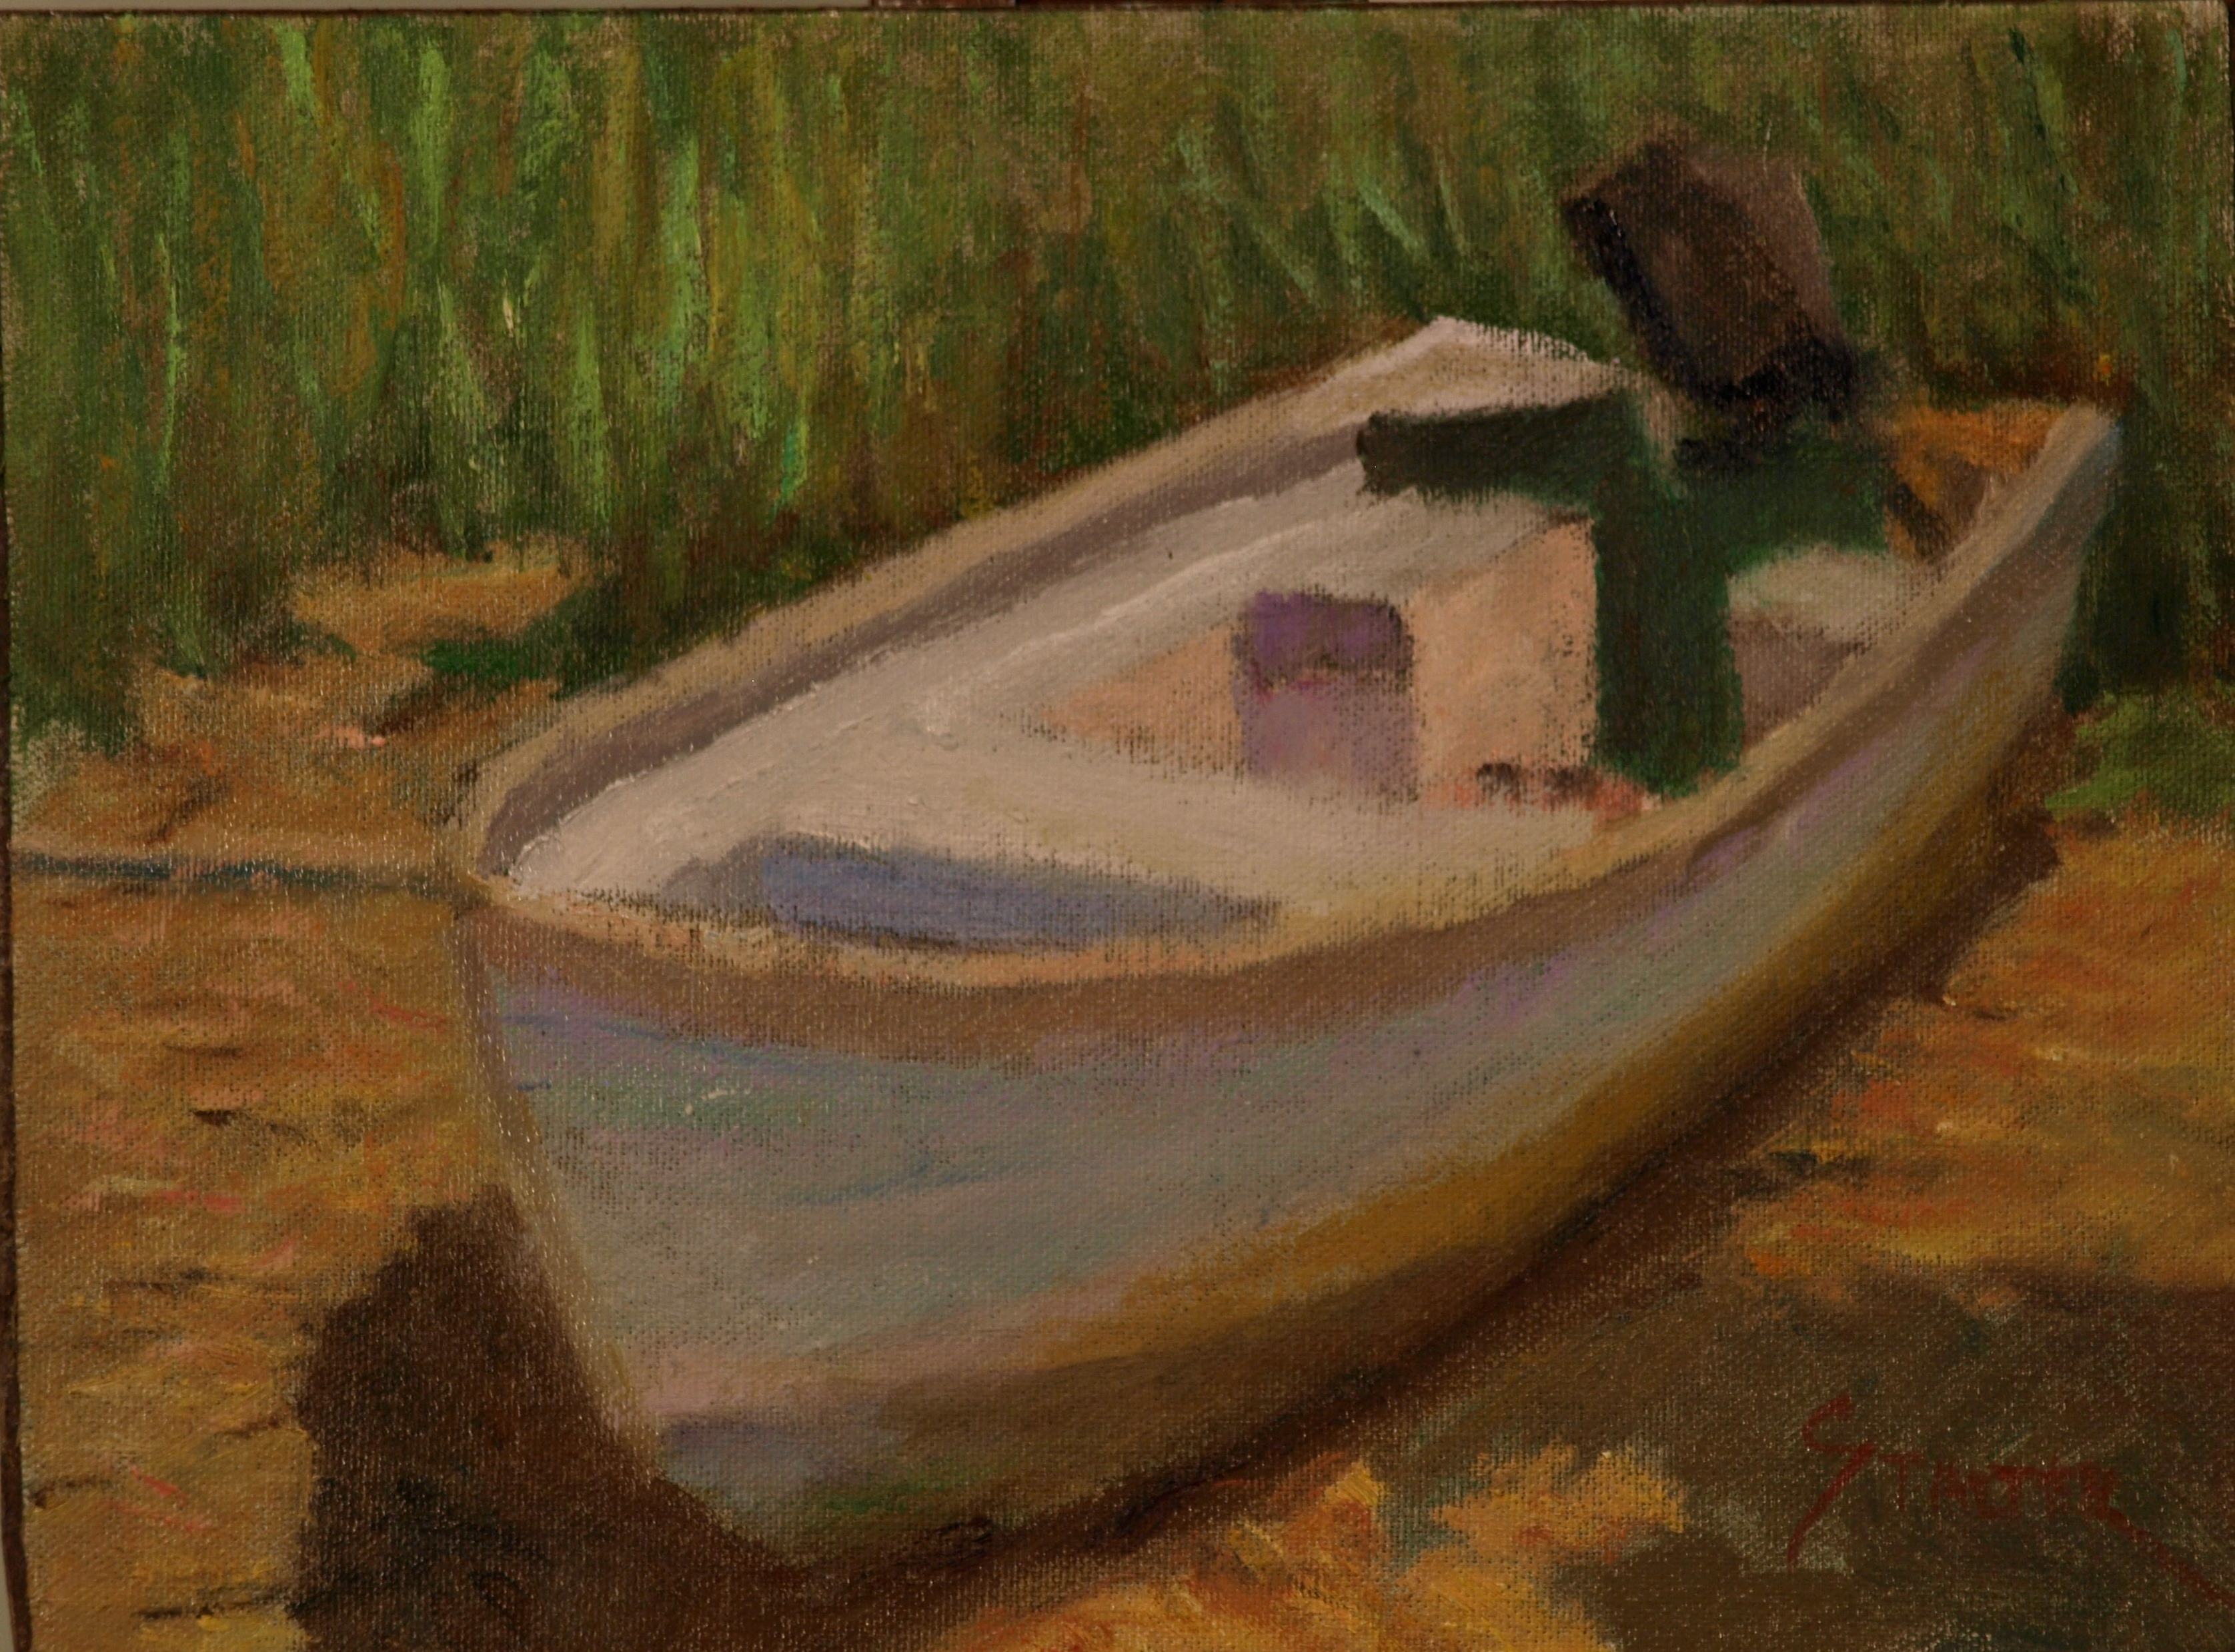 Beached Dory, Oil on Canvas on Panel, 9 x 12 inches, by Richard Stalter, $225